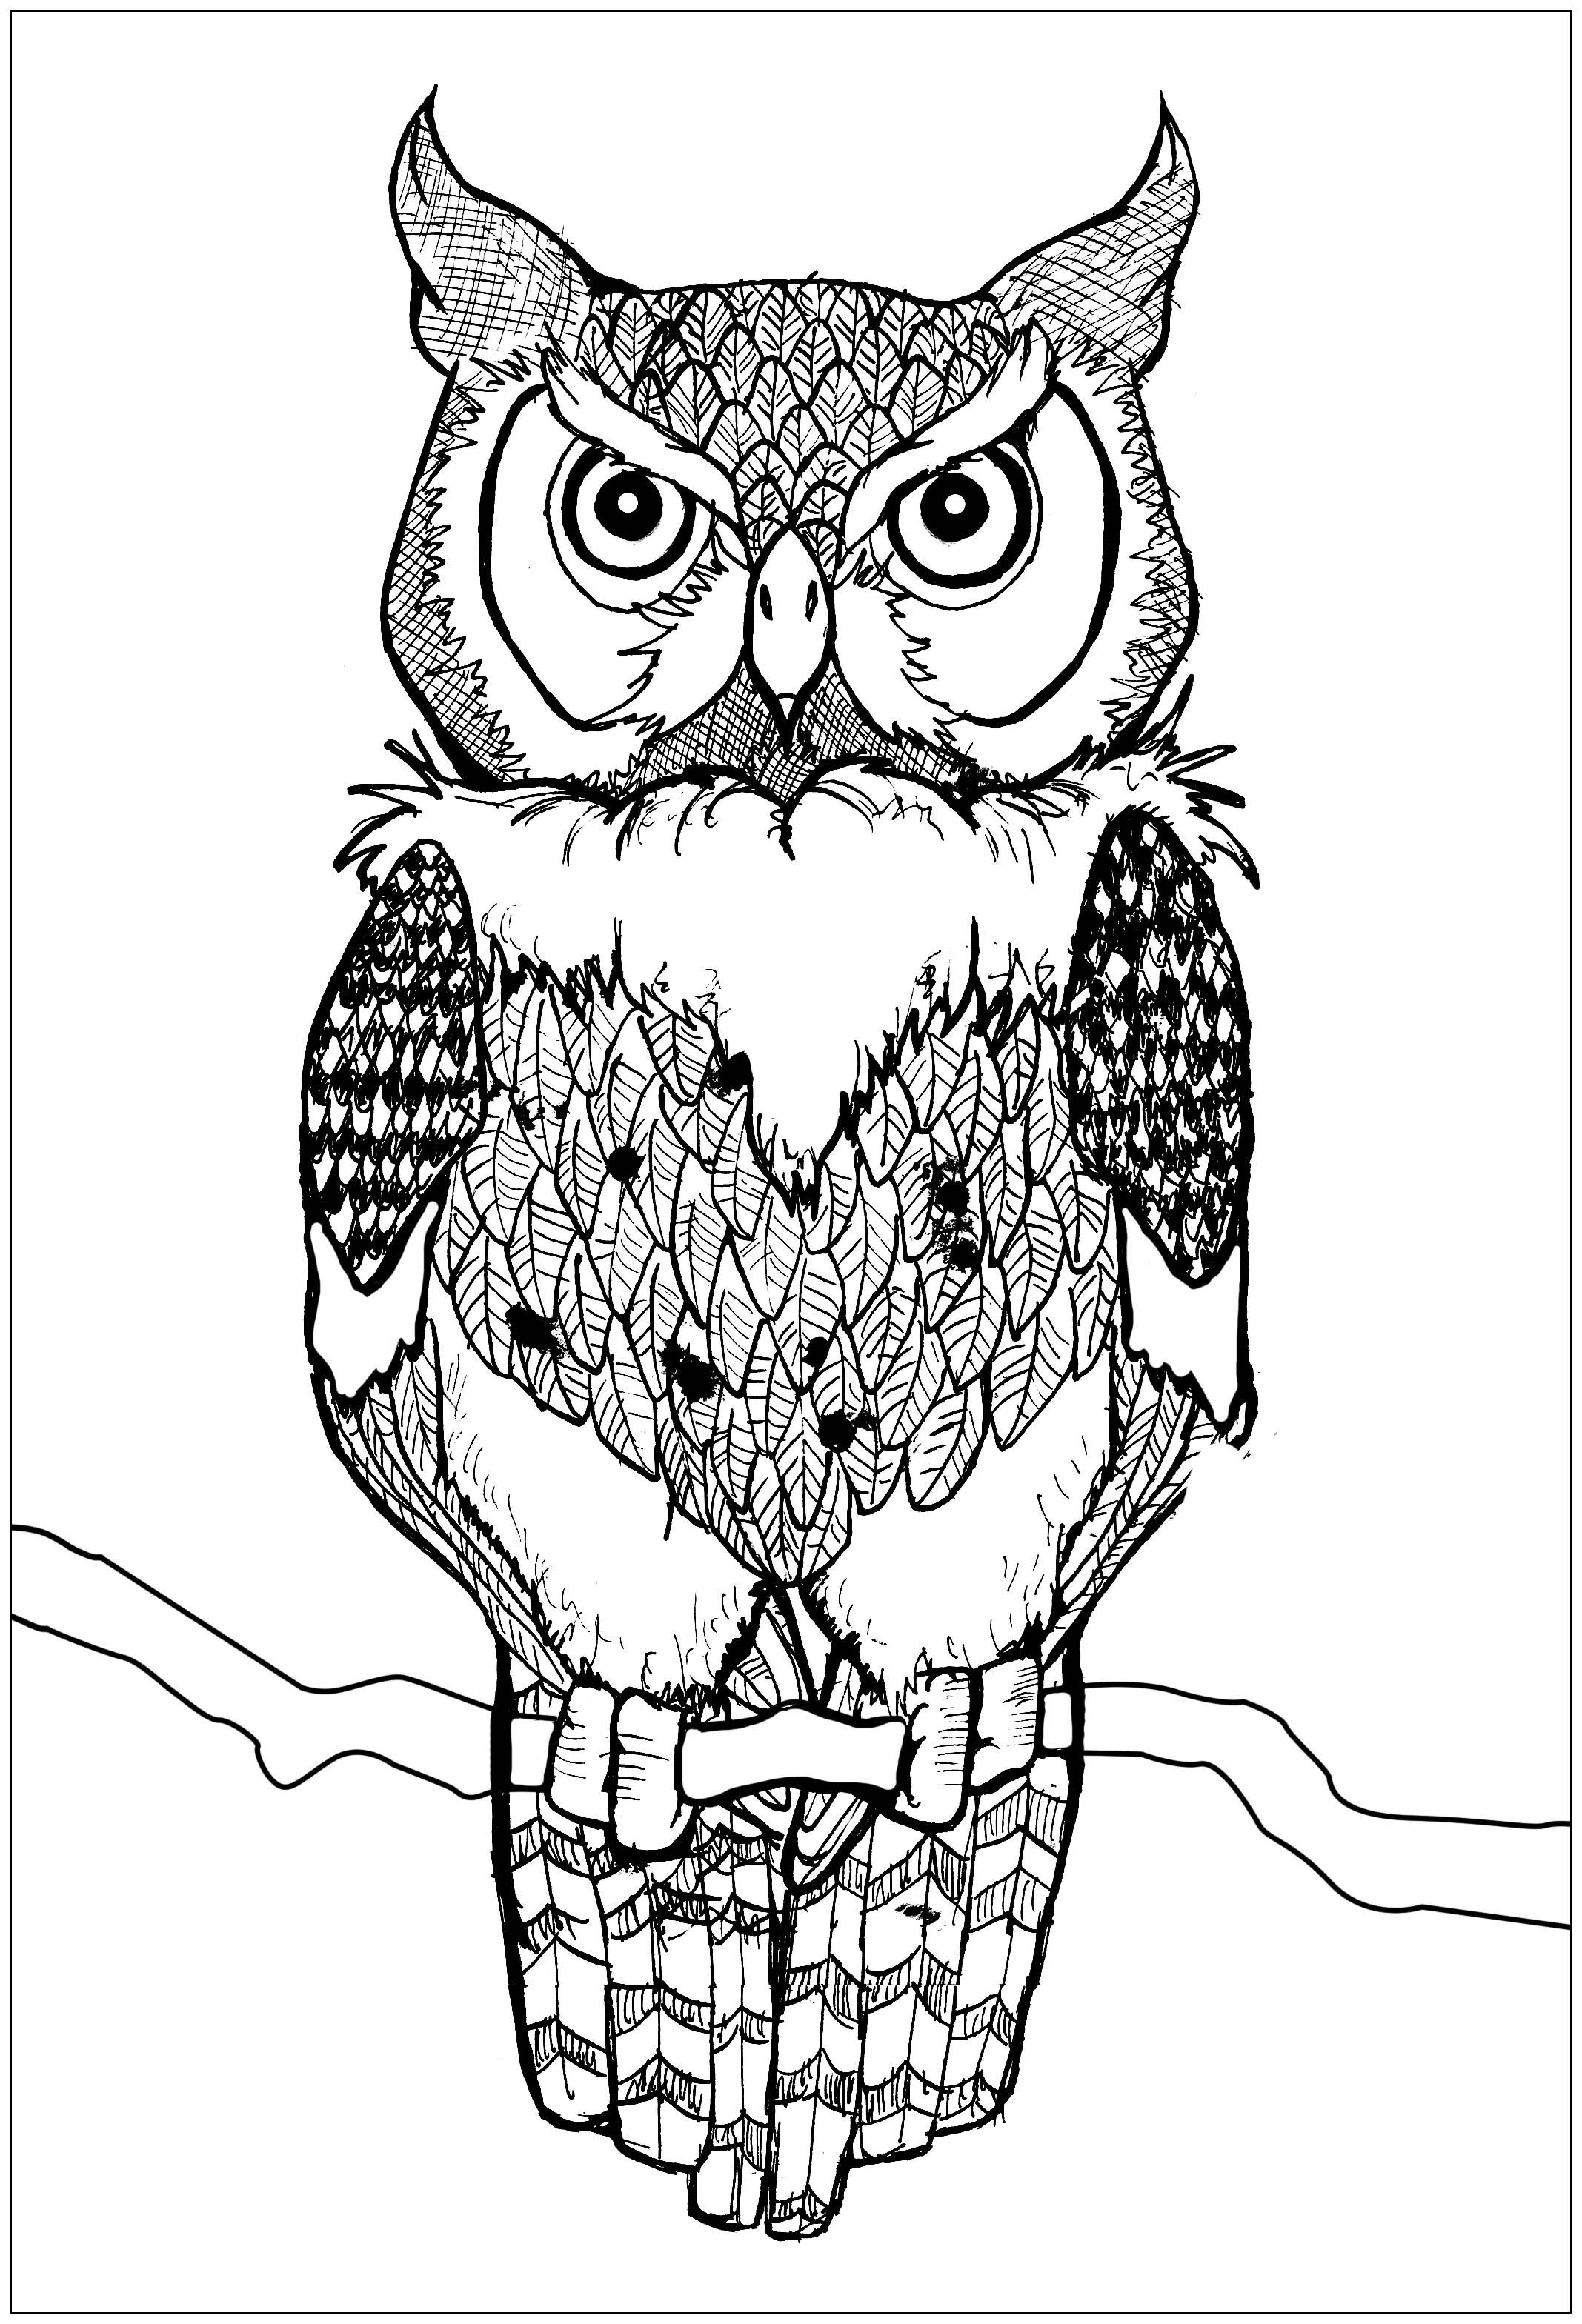 Piercing eyes owl Owls Adult Coloring Pages